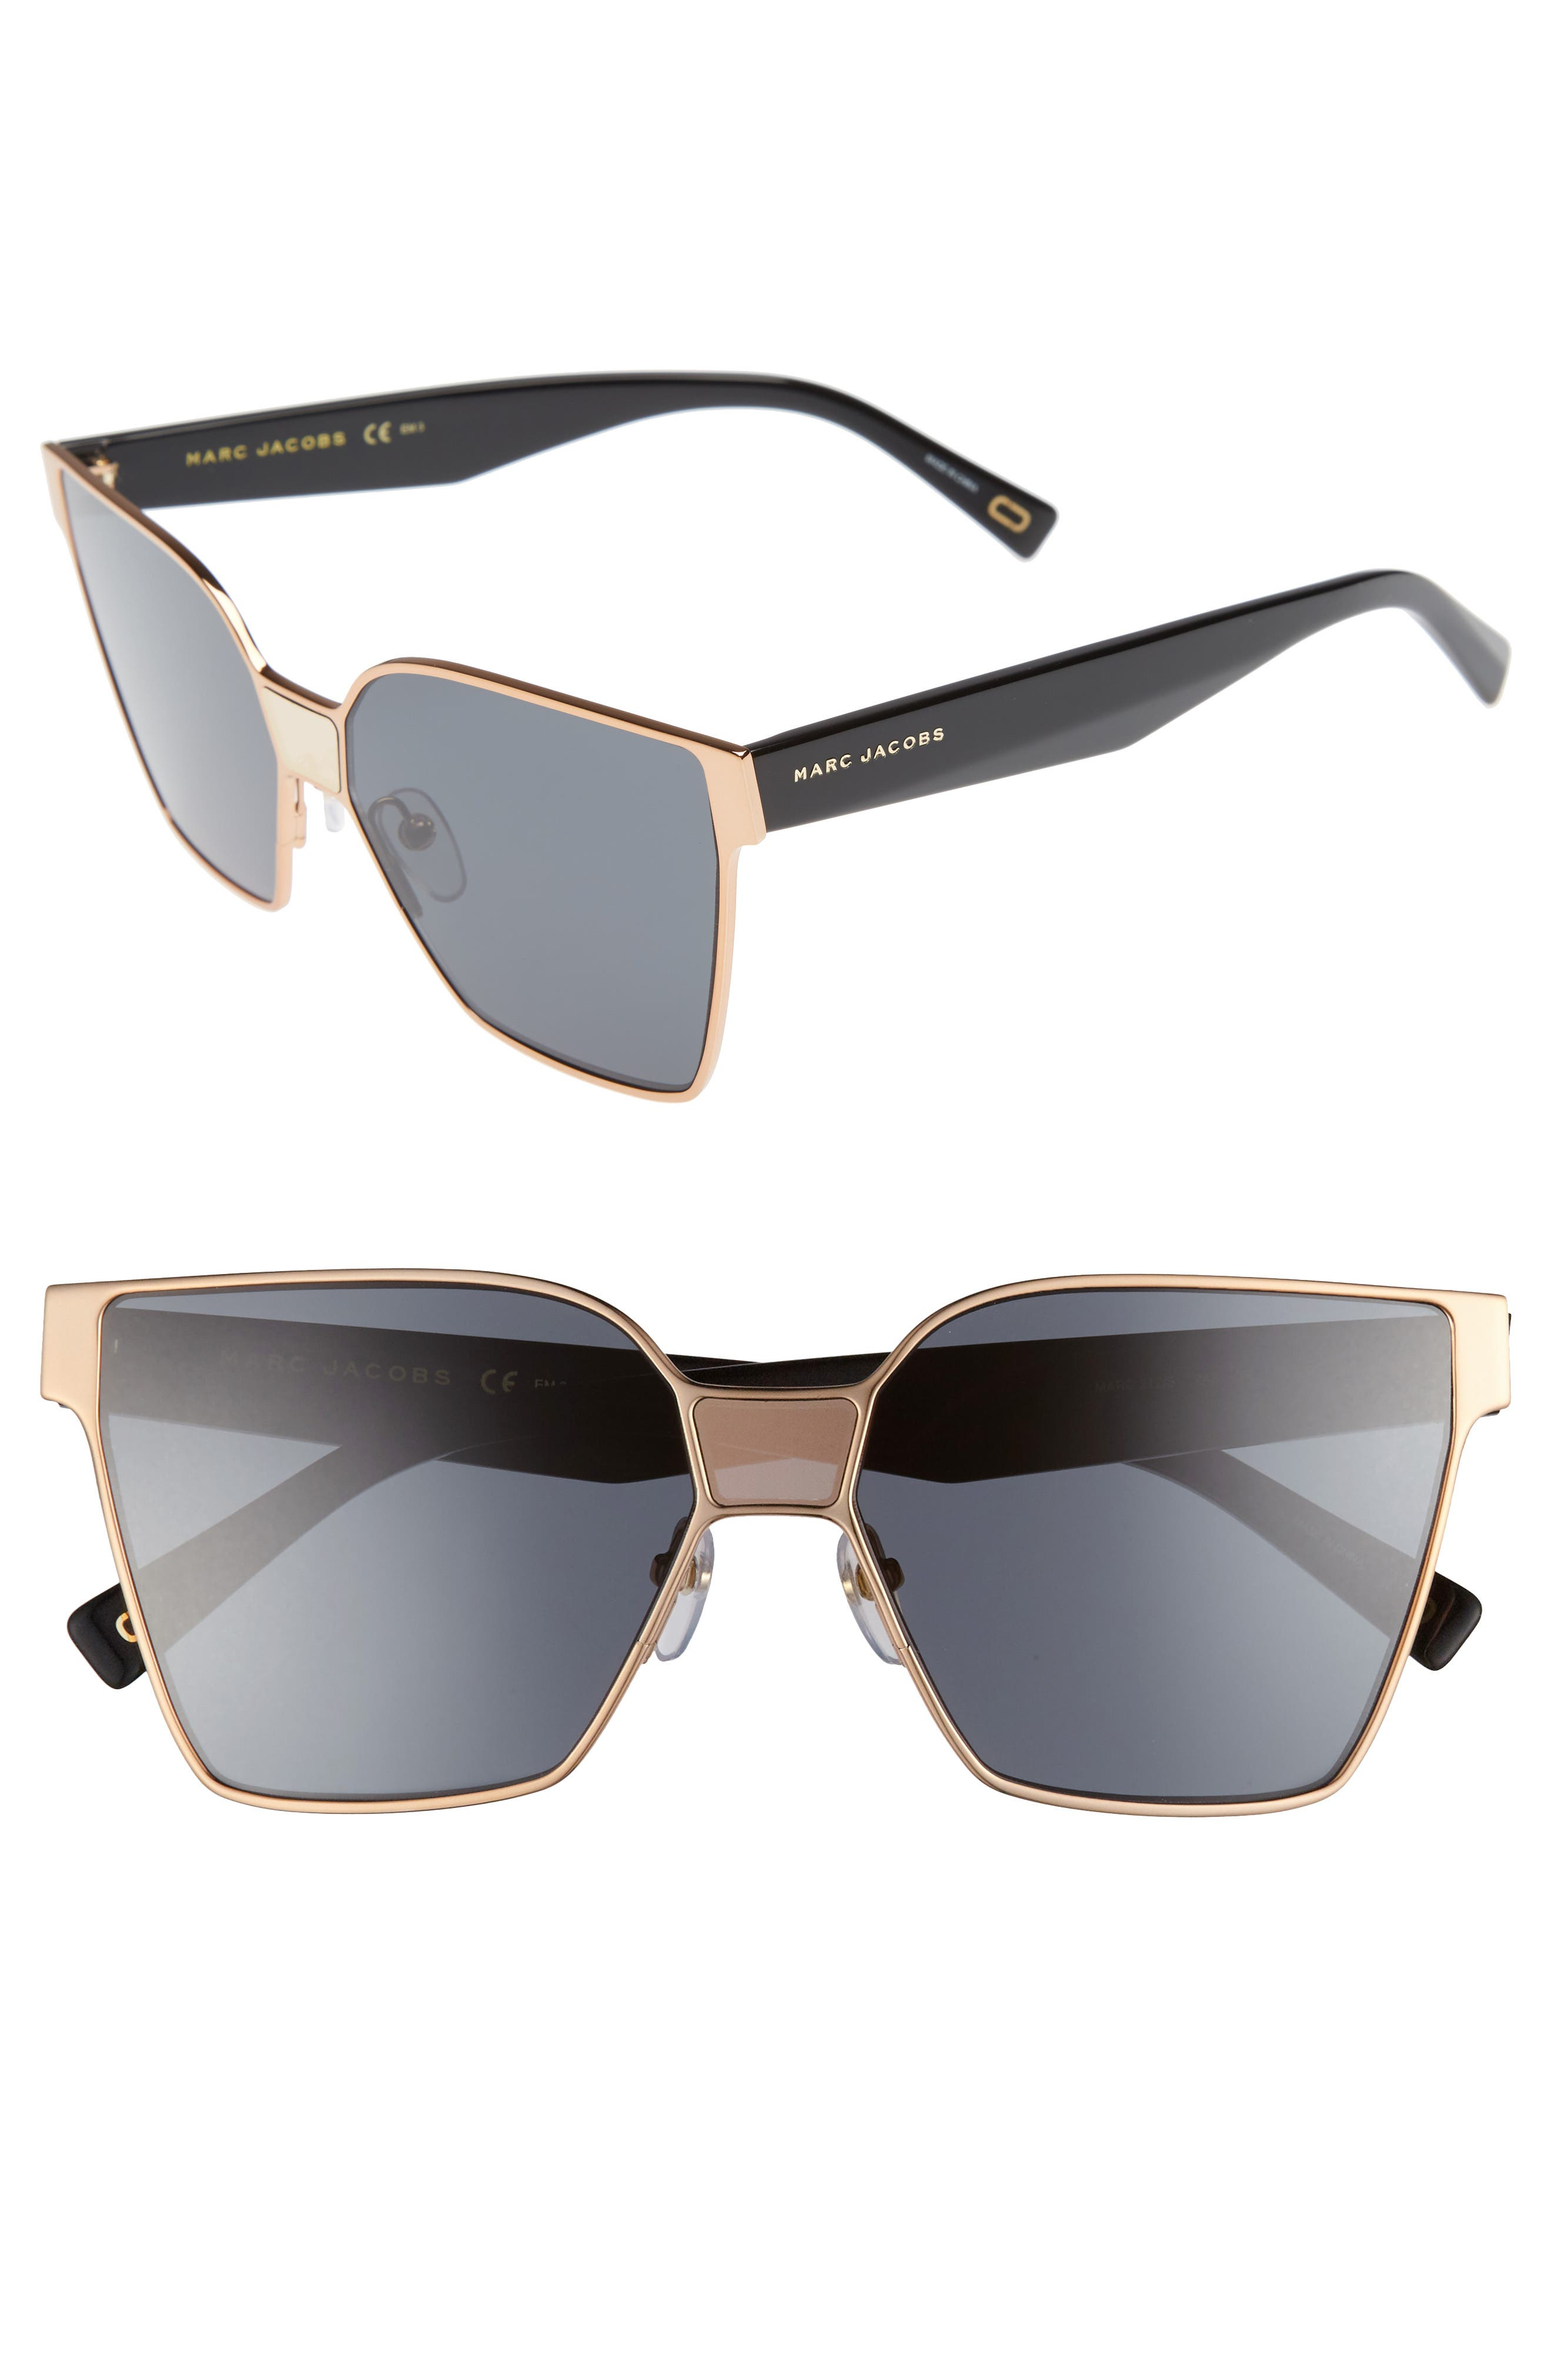 MARC JACOBS 60mm Square Sunglasses